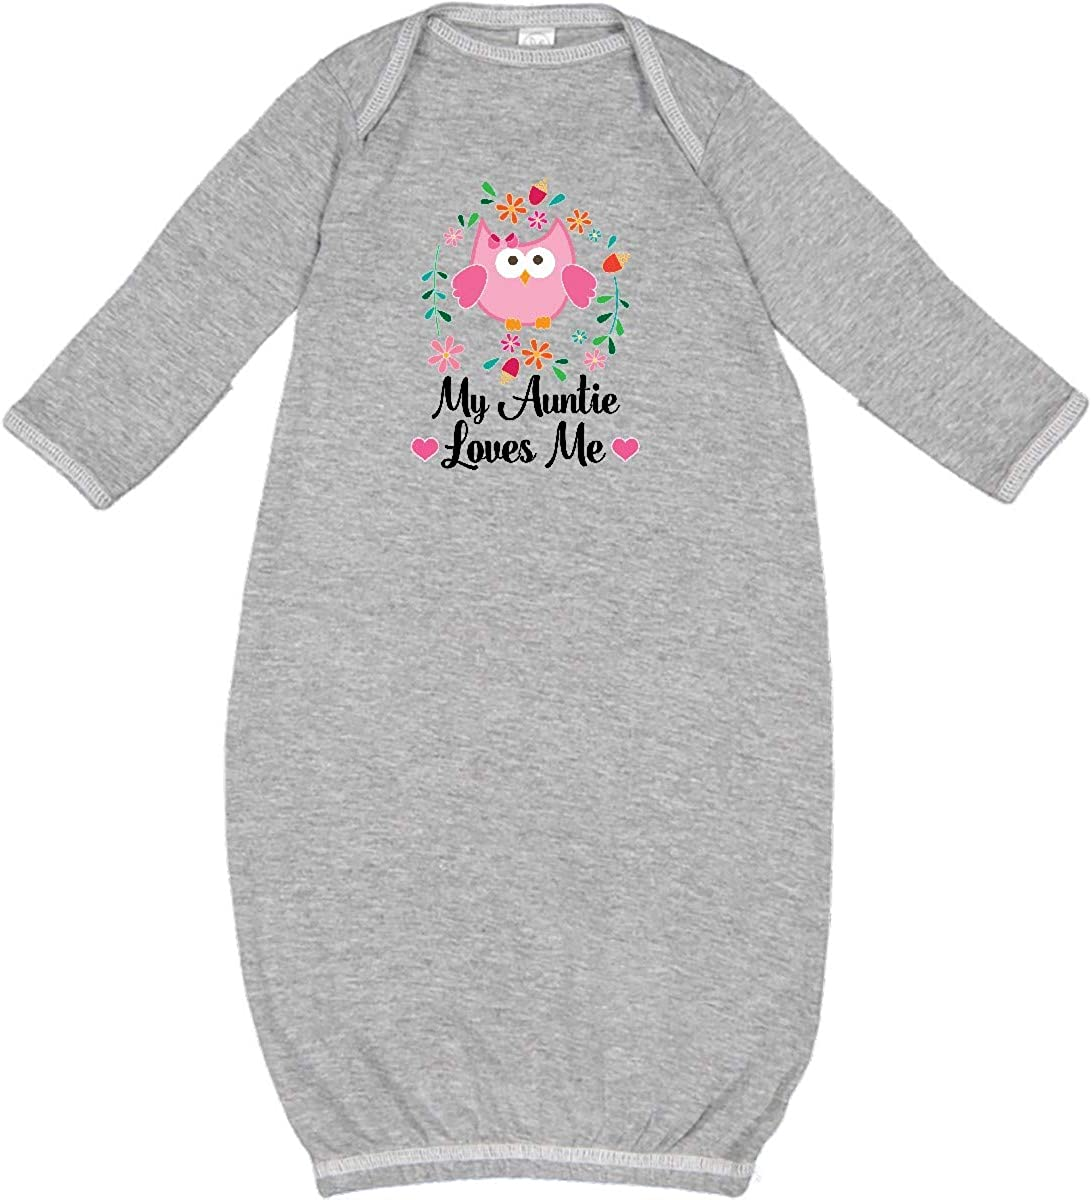 inktastic My Auntie Loves Me Nephew Gift Toddler T-Shirt